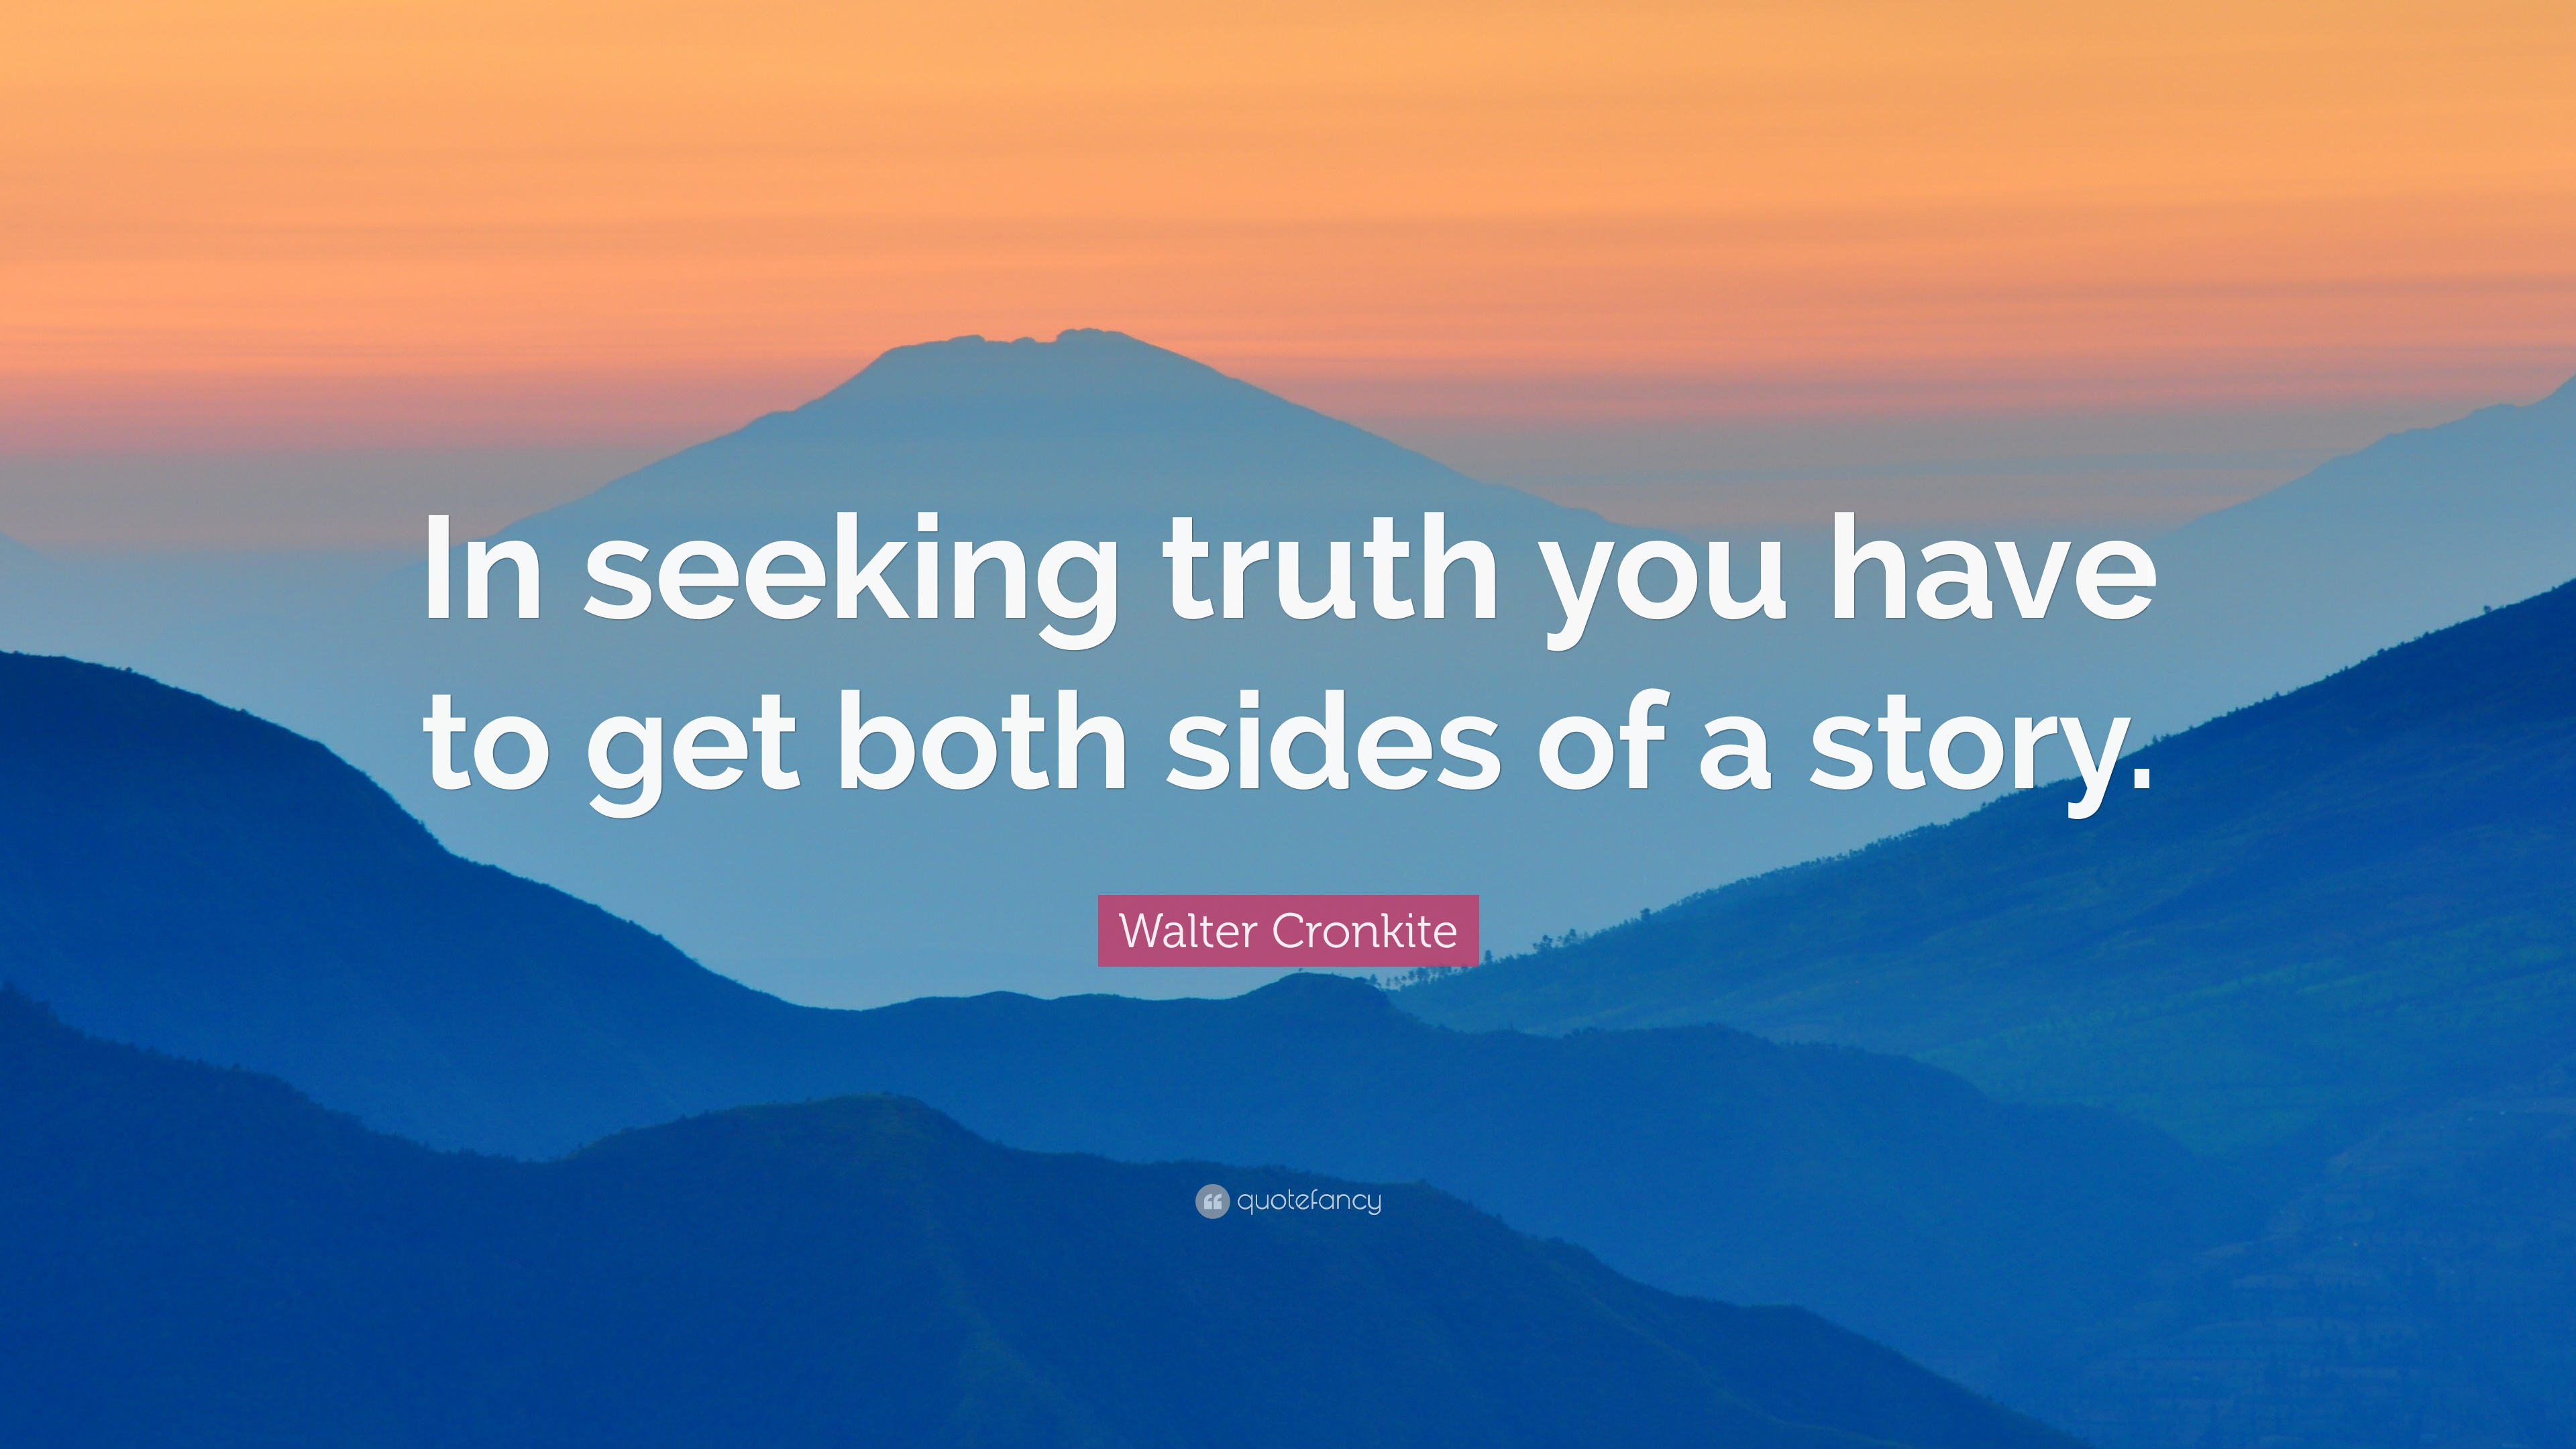 in seeking the truth you have to get both sides of a story